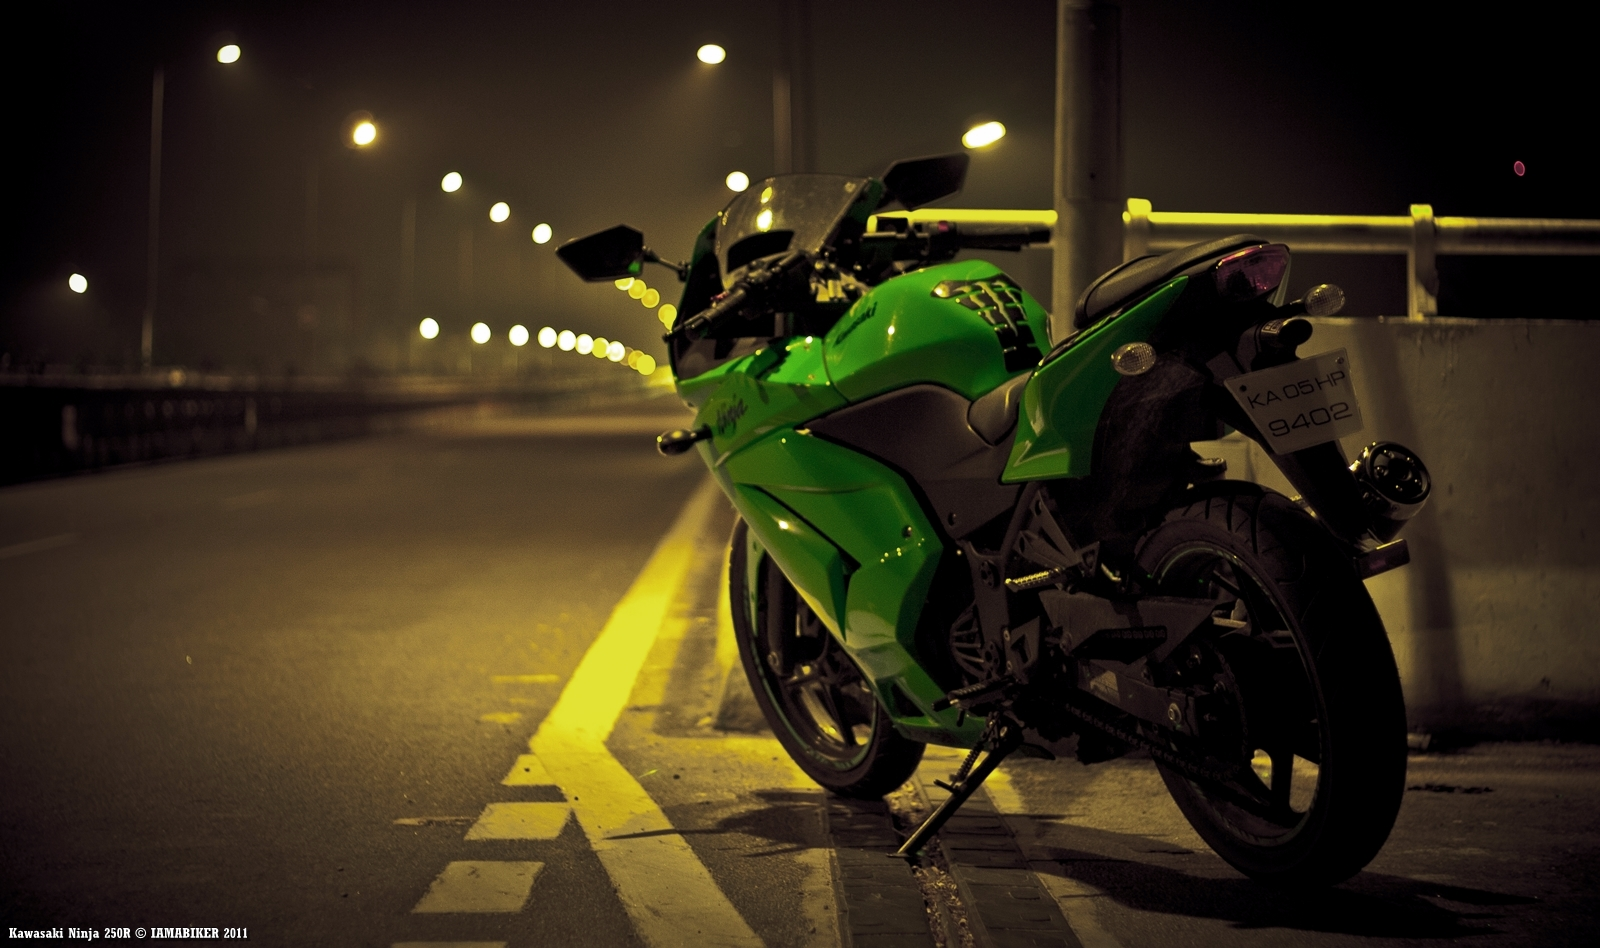 250r wallpapers ninja diwali - photo #1